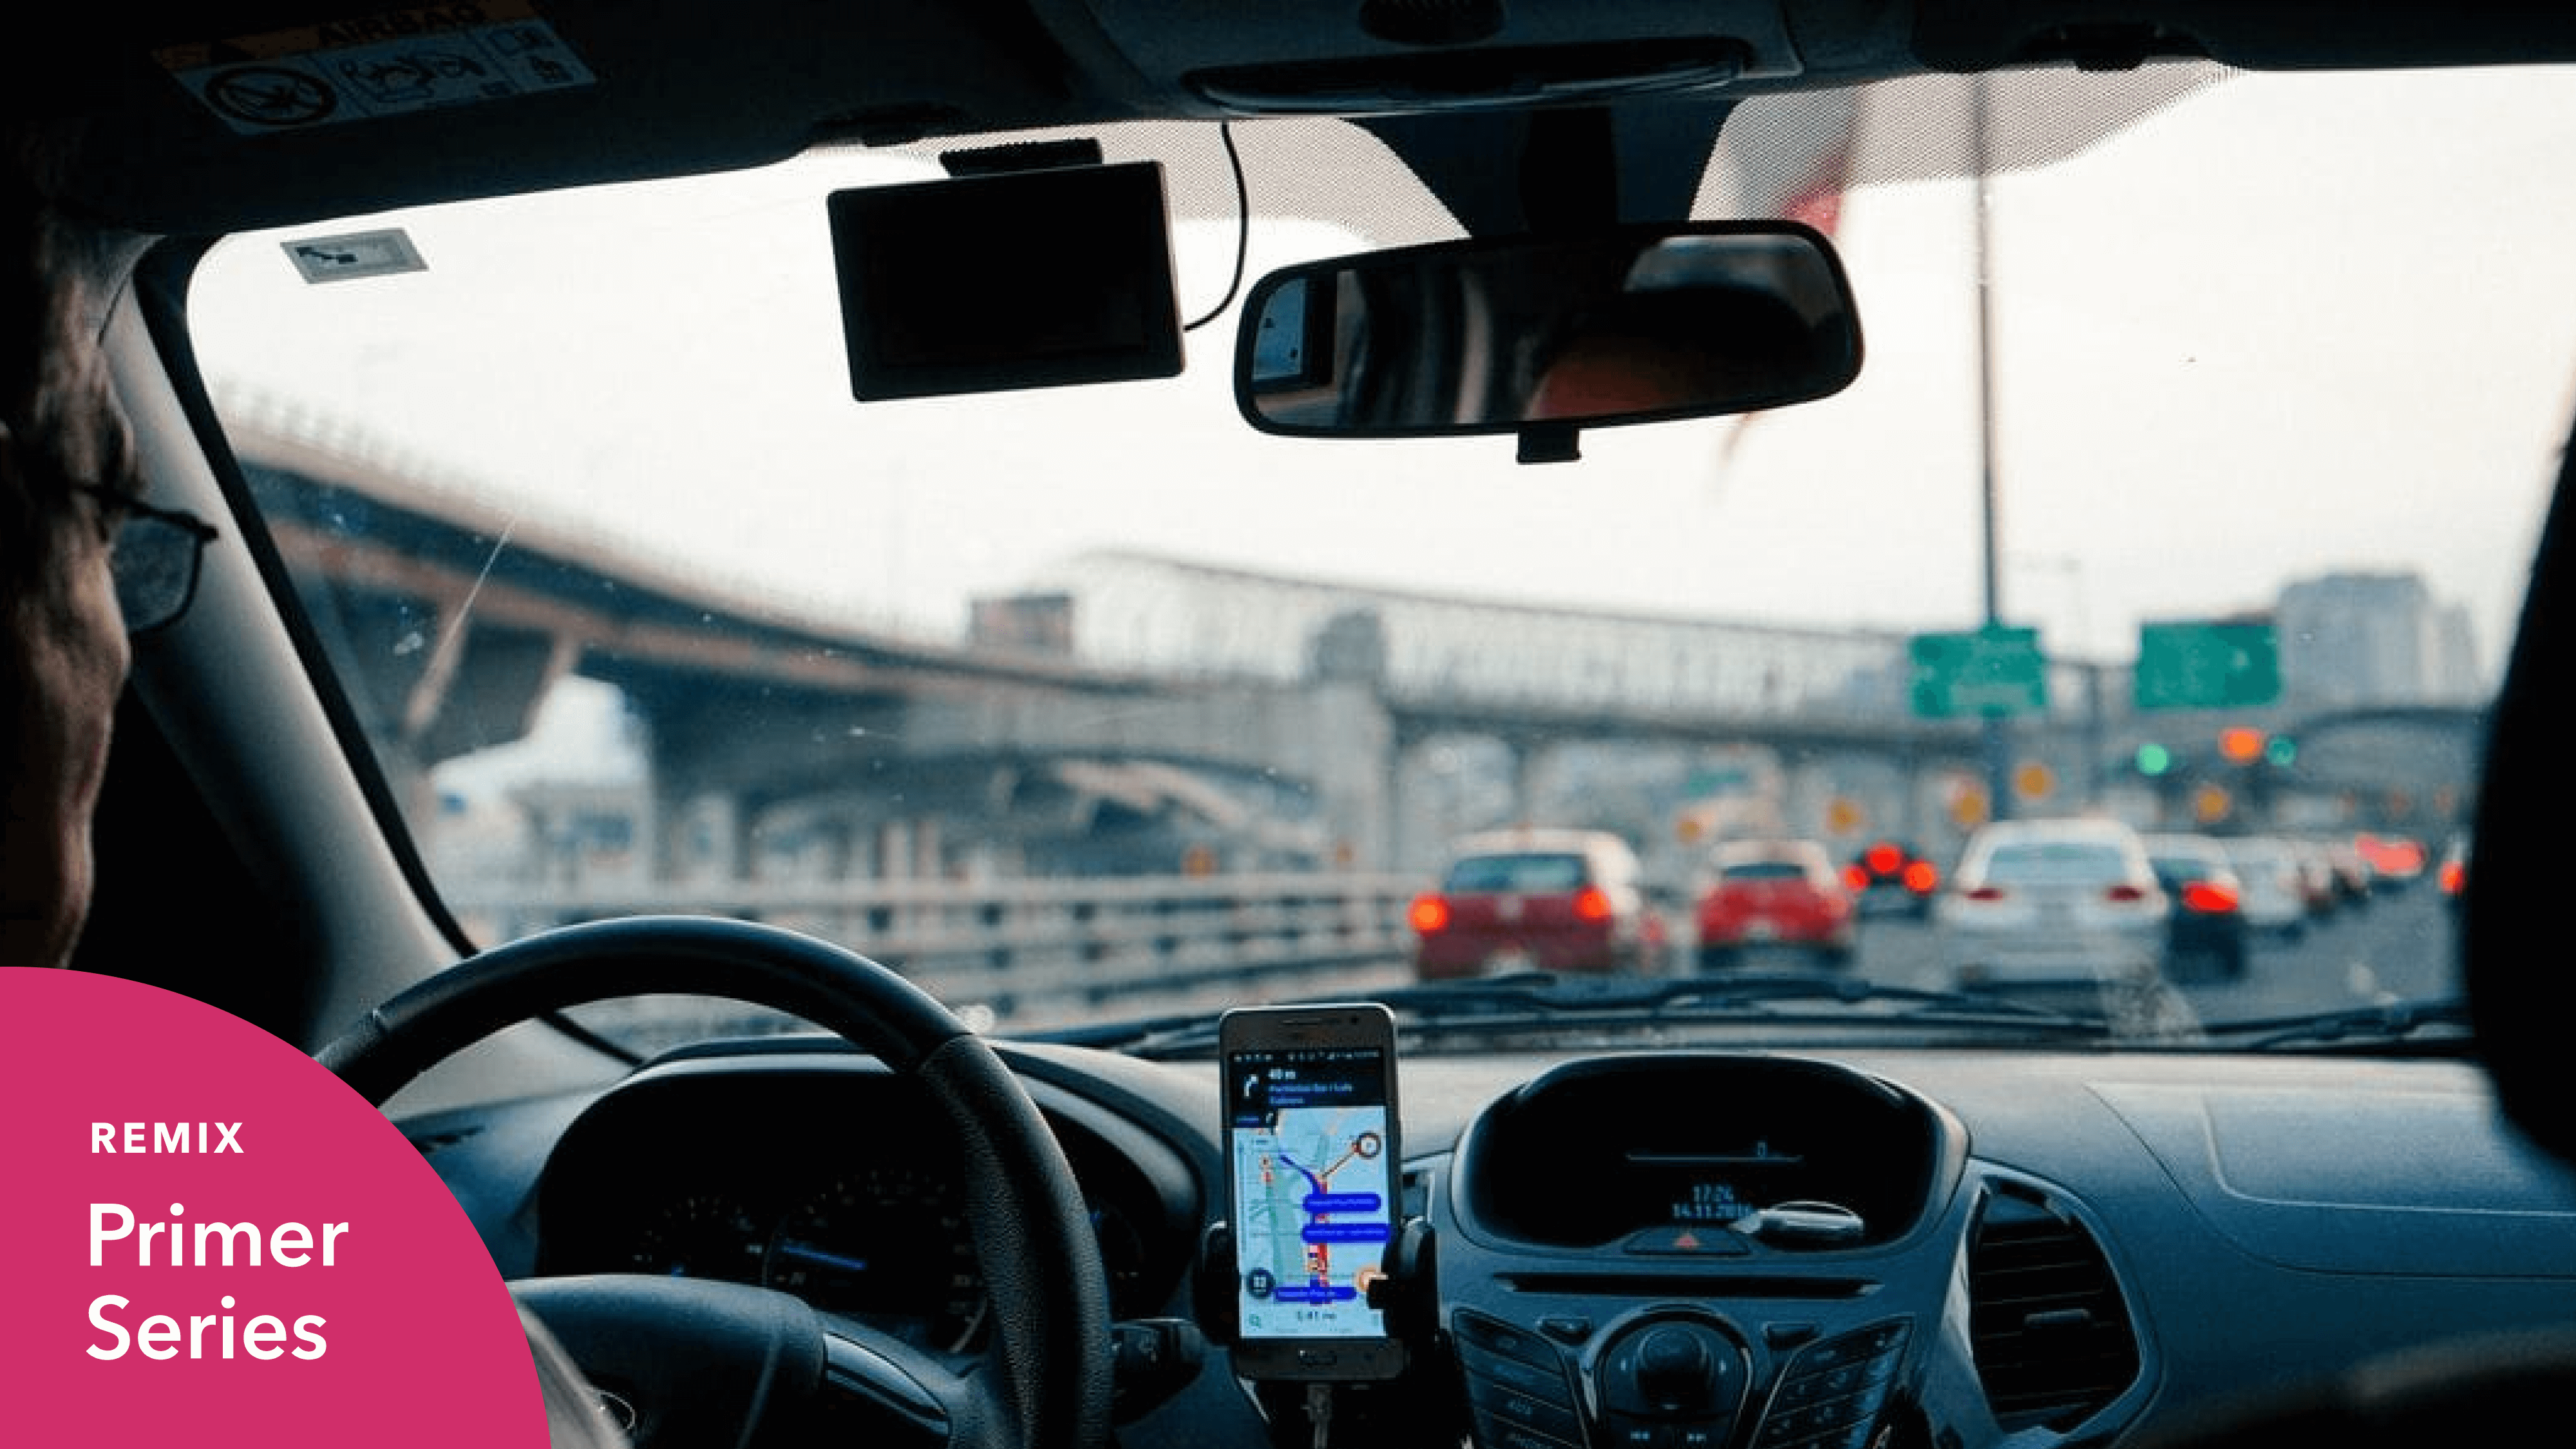 Ride-Hailing vs. Ride-Sharing: The Difference Explained